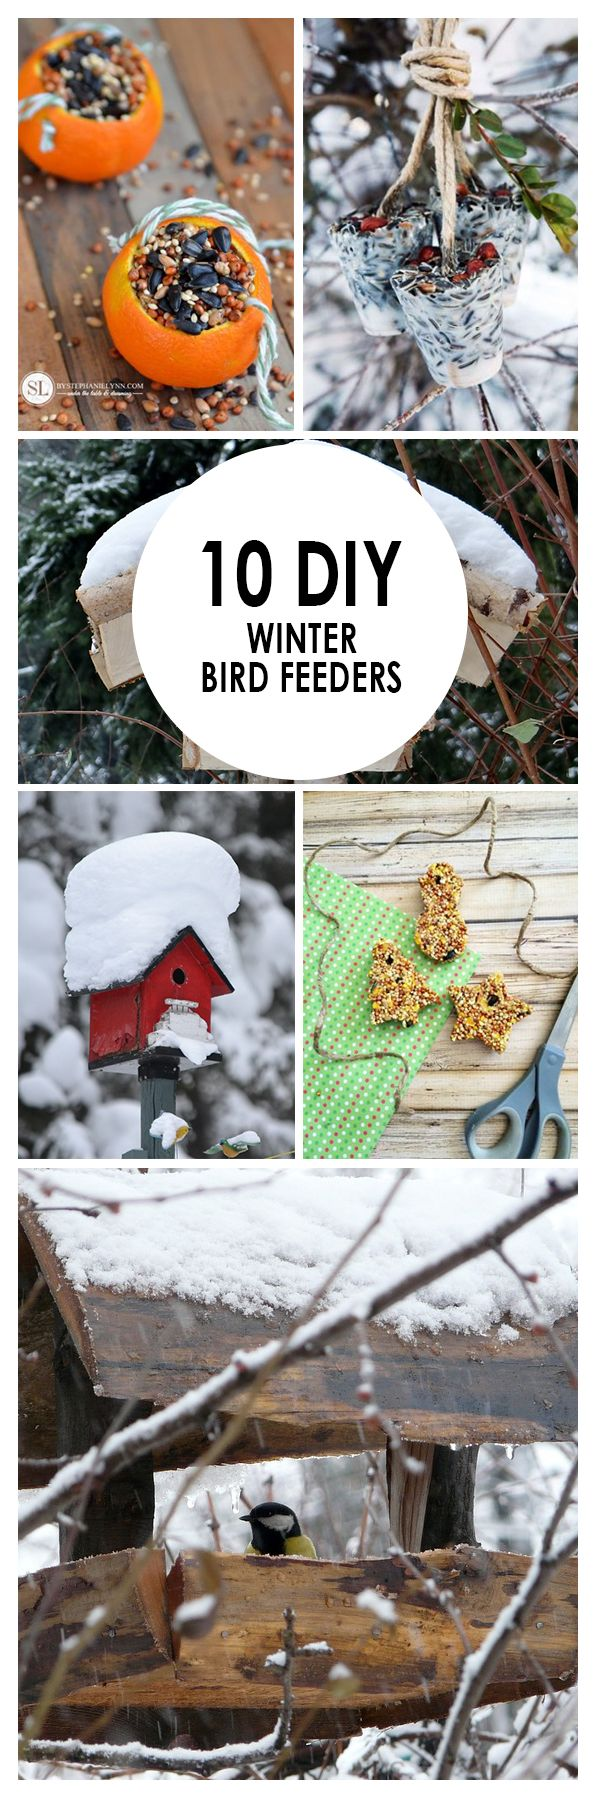 Winter Birdfeeders Winter Gardening Winter Gardening Tips